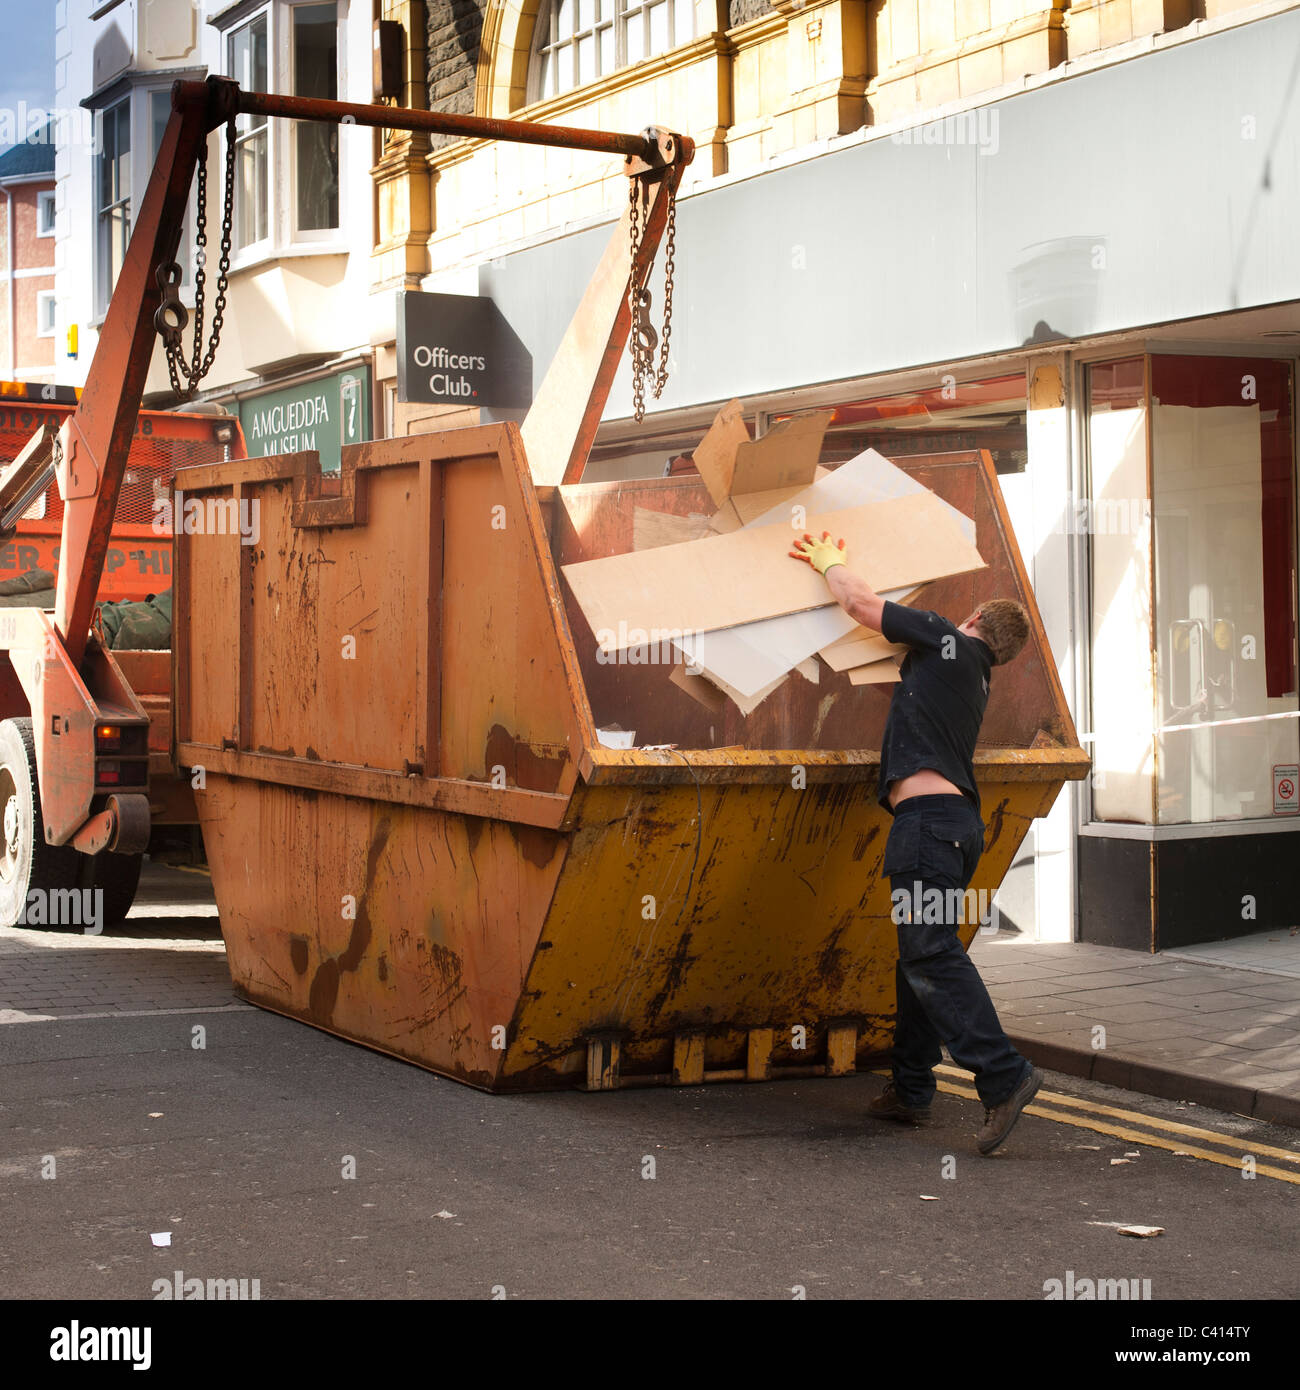 Ea 189 Diesel Engine Refitting Stock Photos And Refitting Stock Images Alamy